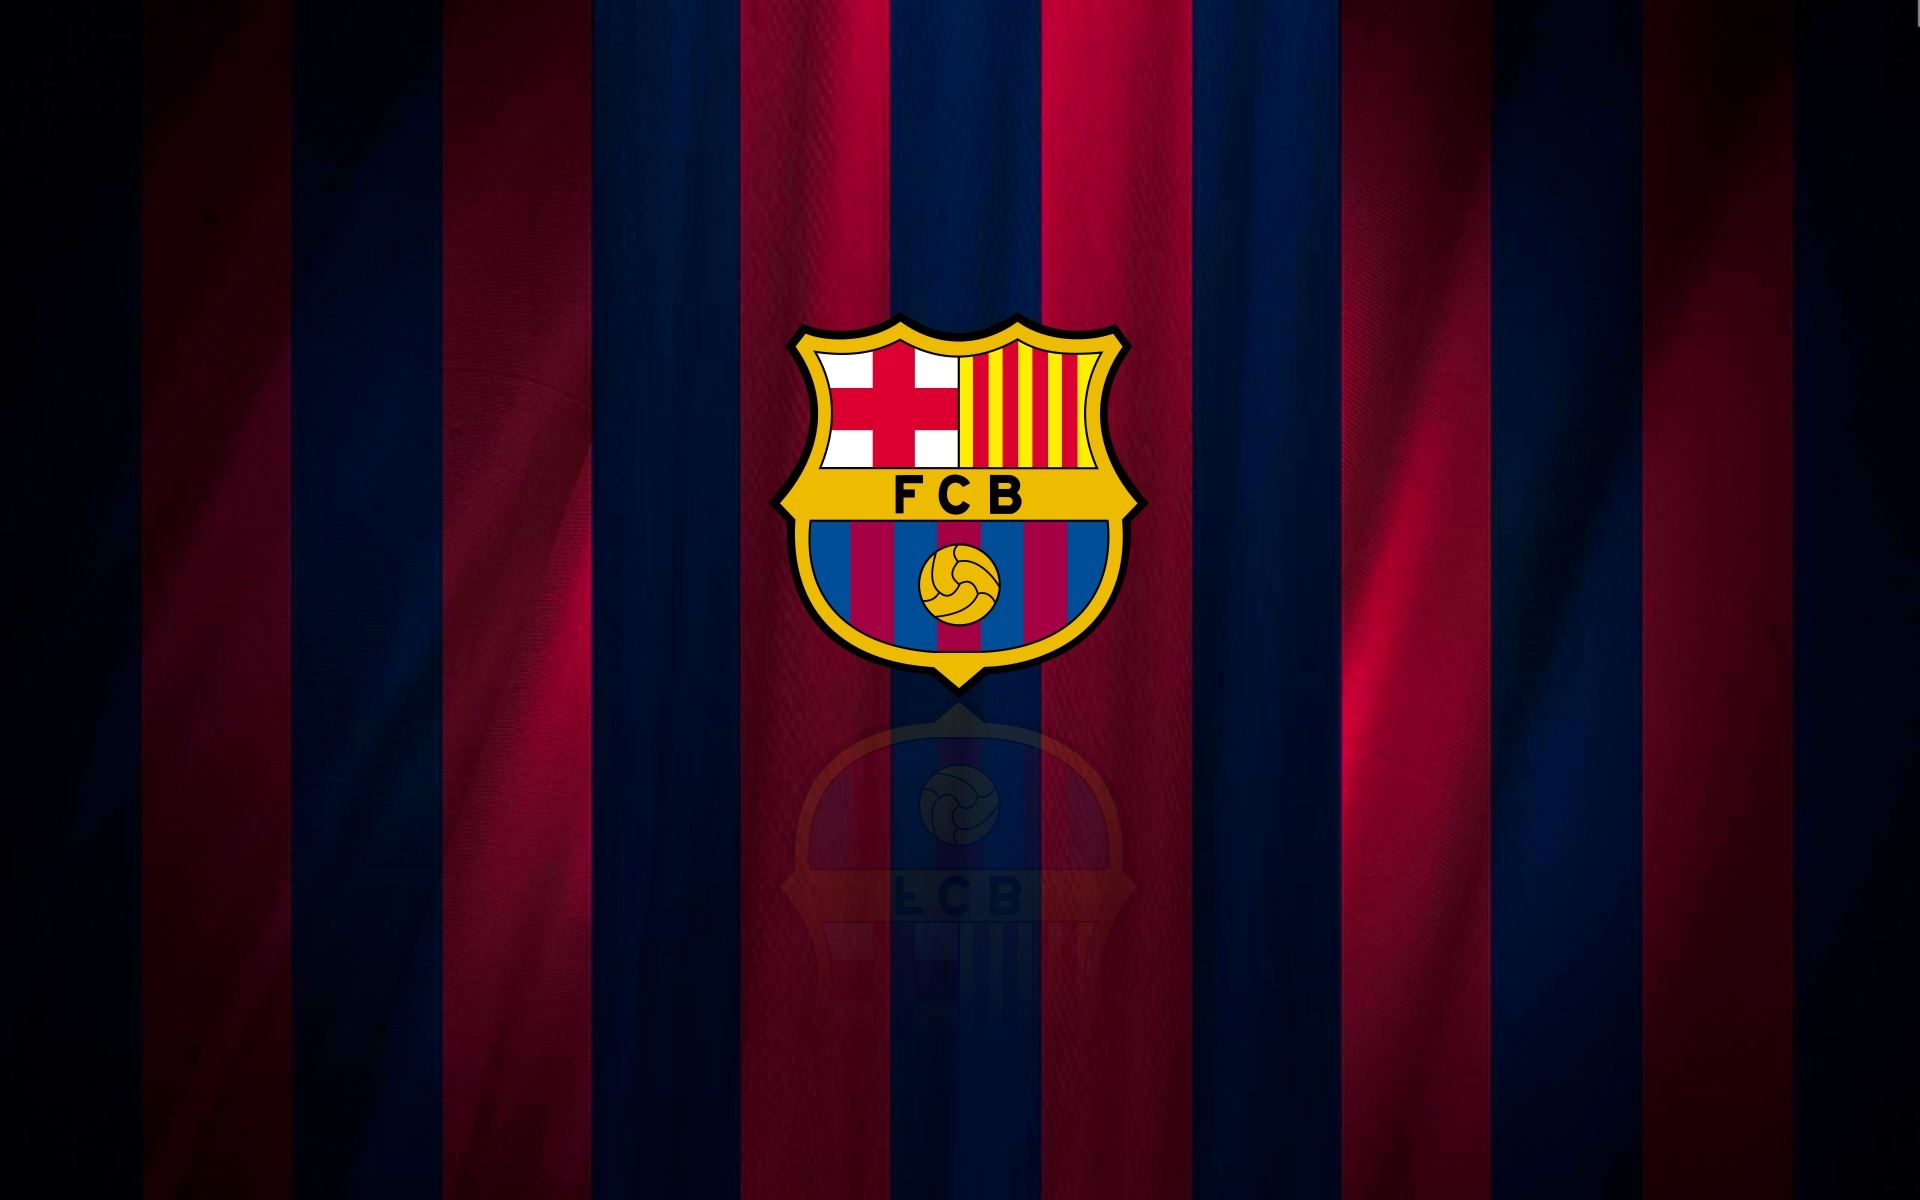 FC Barcelona Logos Download 1920x1200